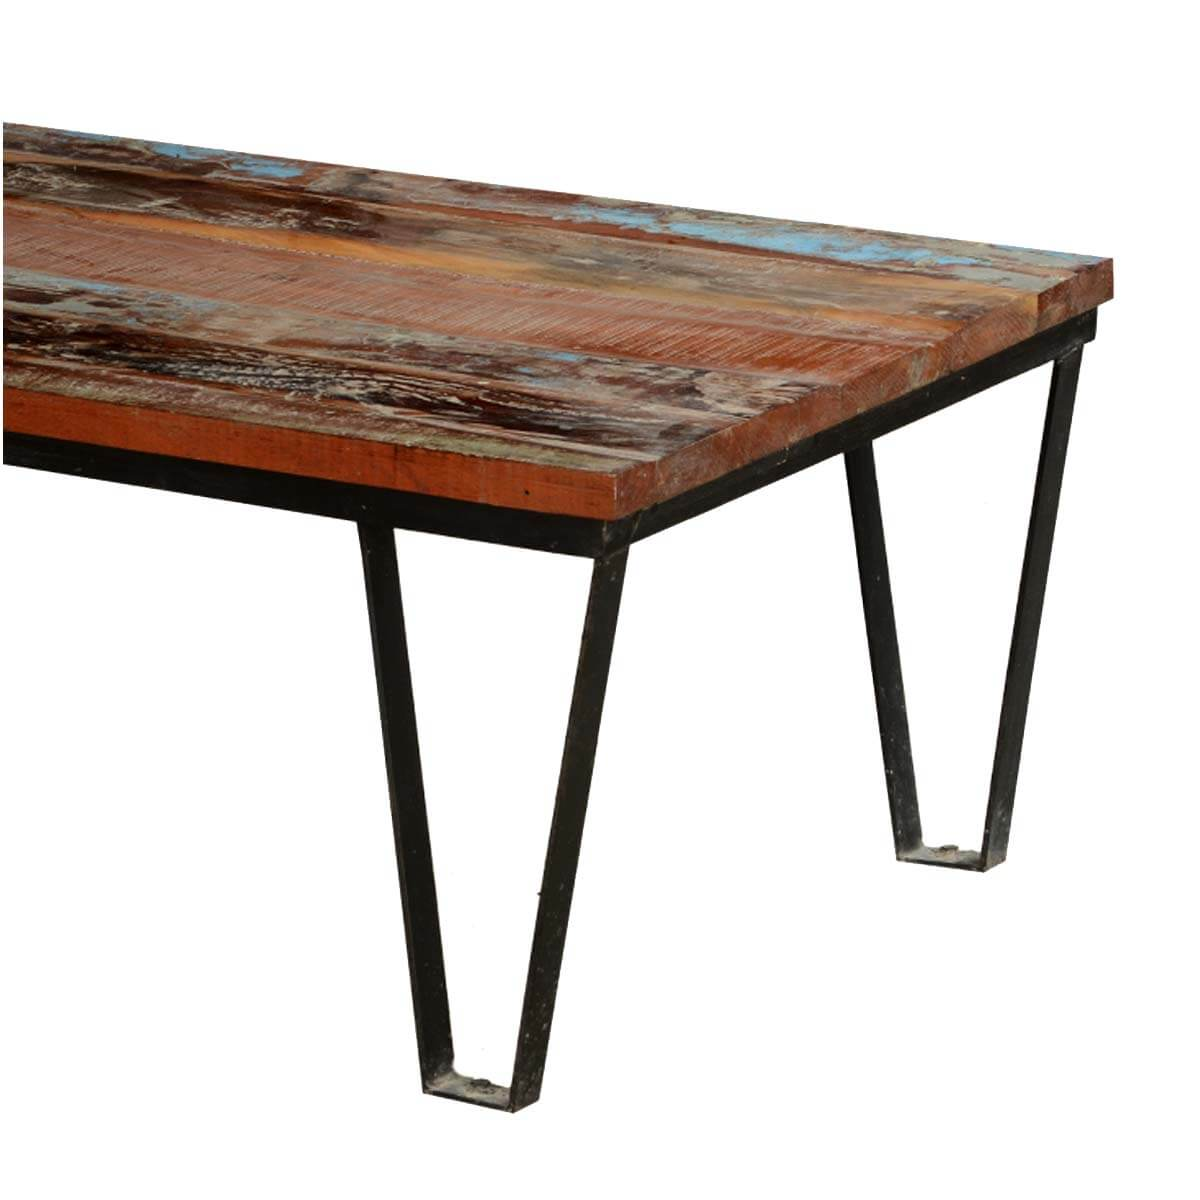 Industrial Rustic Factory Cart Coffee Table: Reclaimed Wood Industrial Style Factory Cart Coffee Table